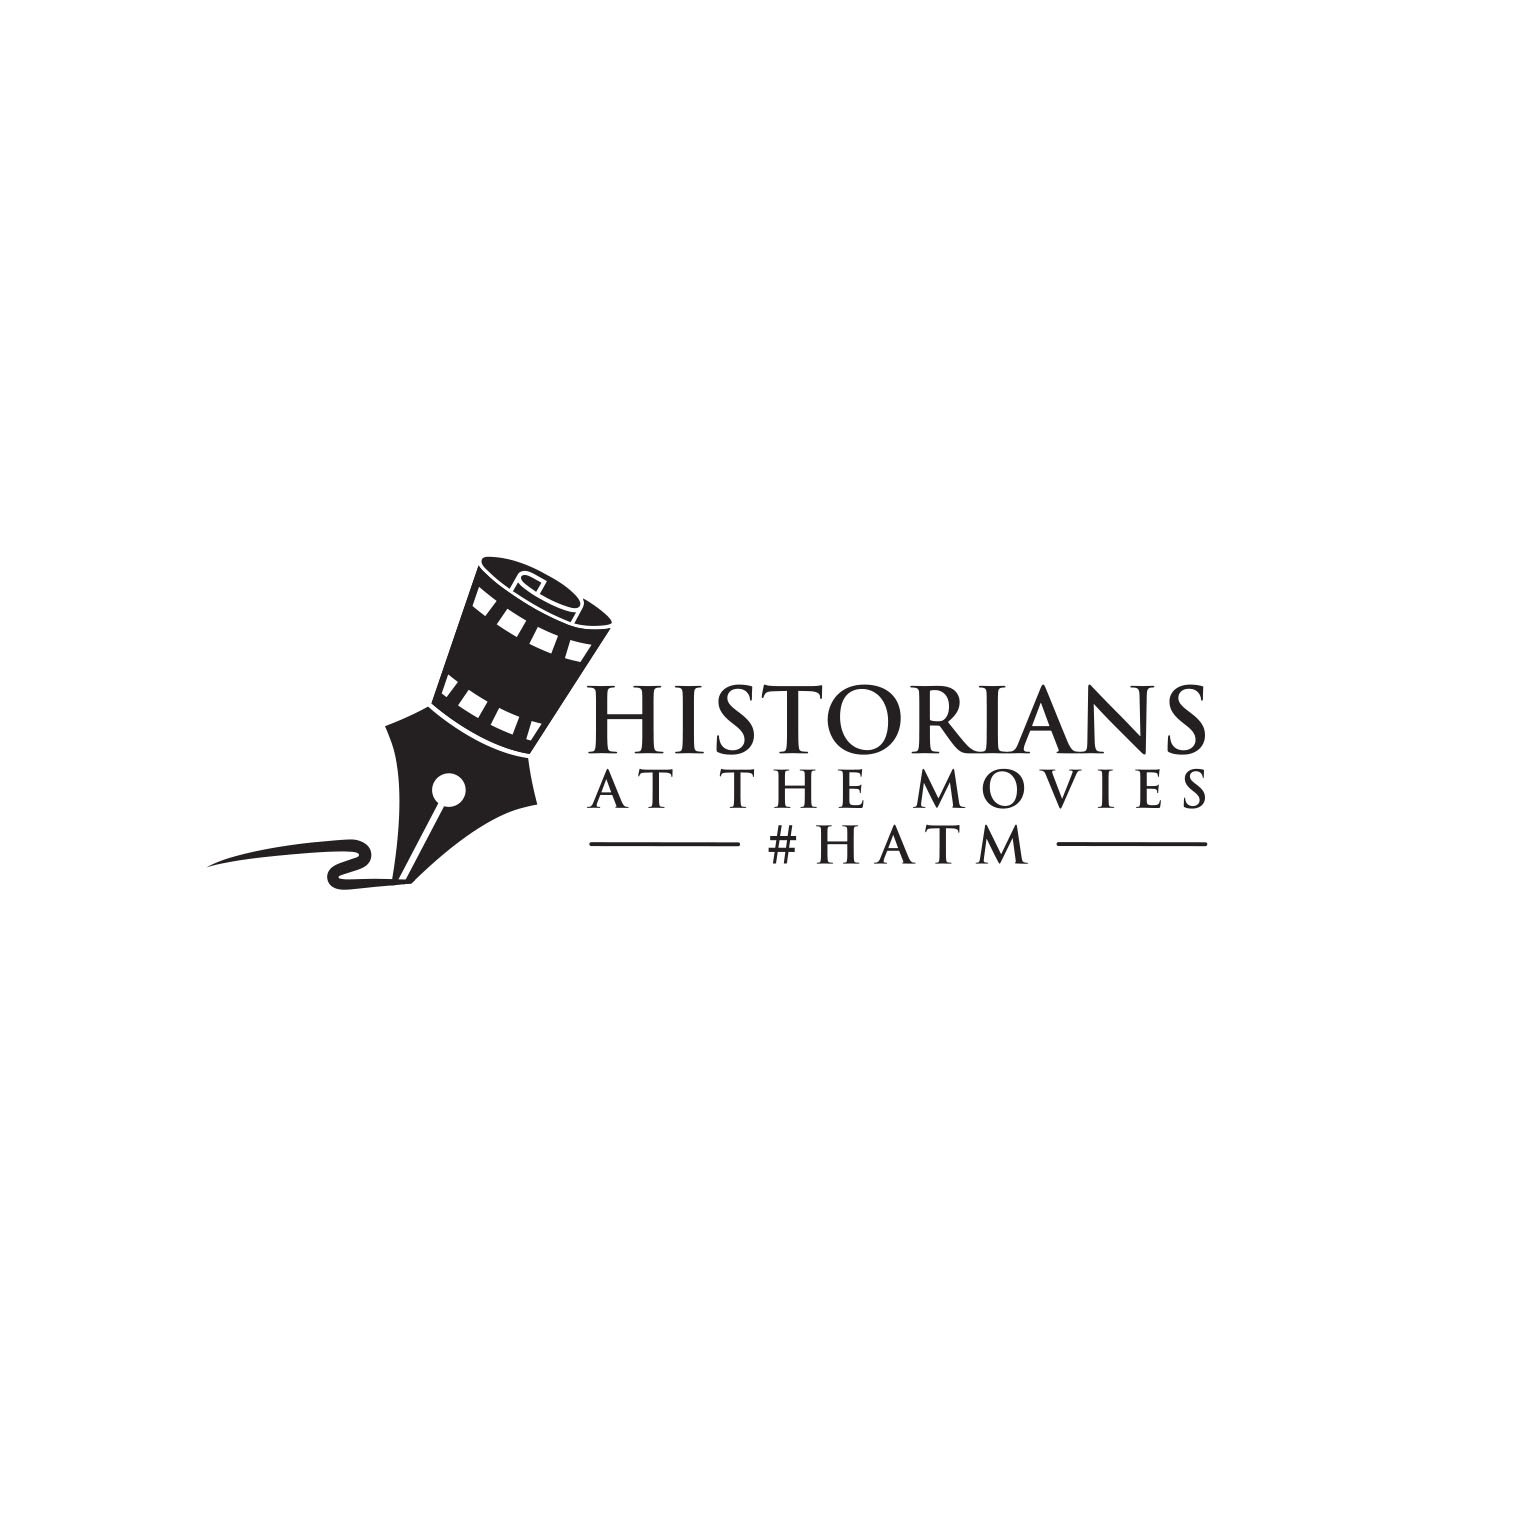 Create the logo for a weekly trending hashtag: Historians At The Movies (#HATM)